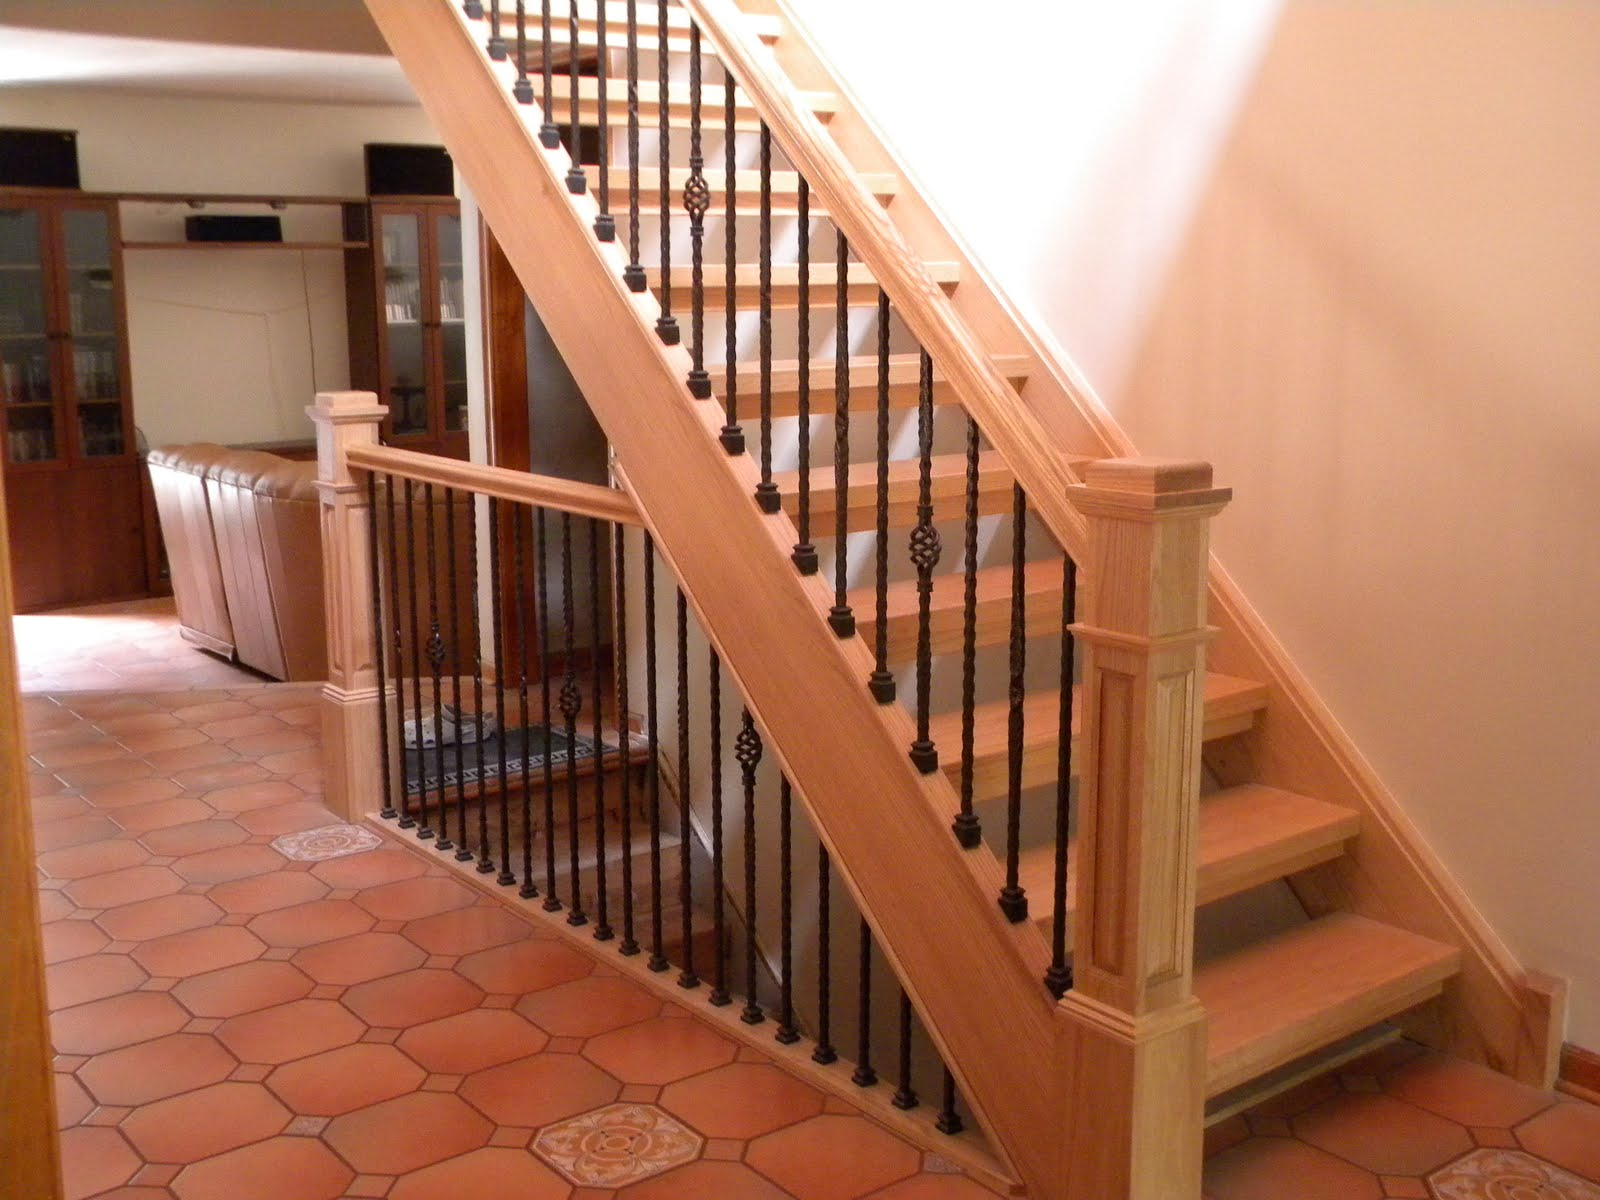 Wood Stairs and Rails and Iron Balusters: August 2010